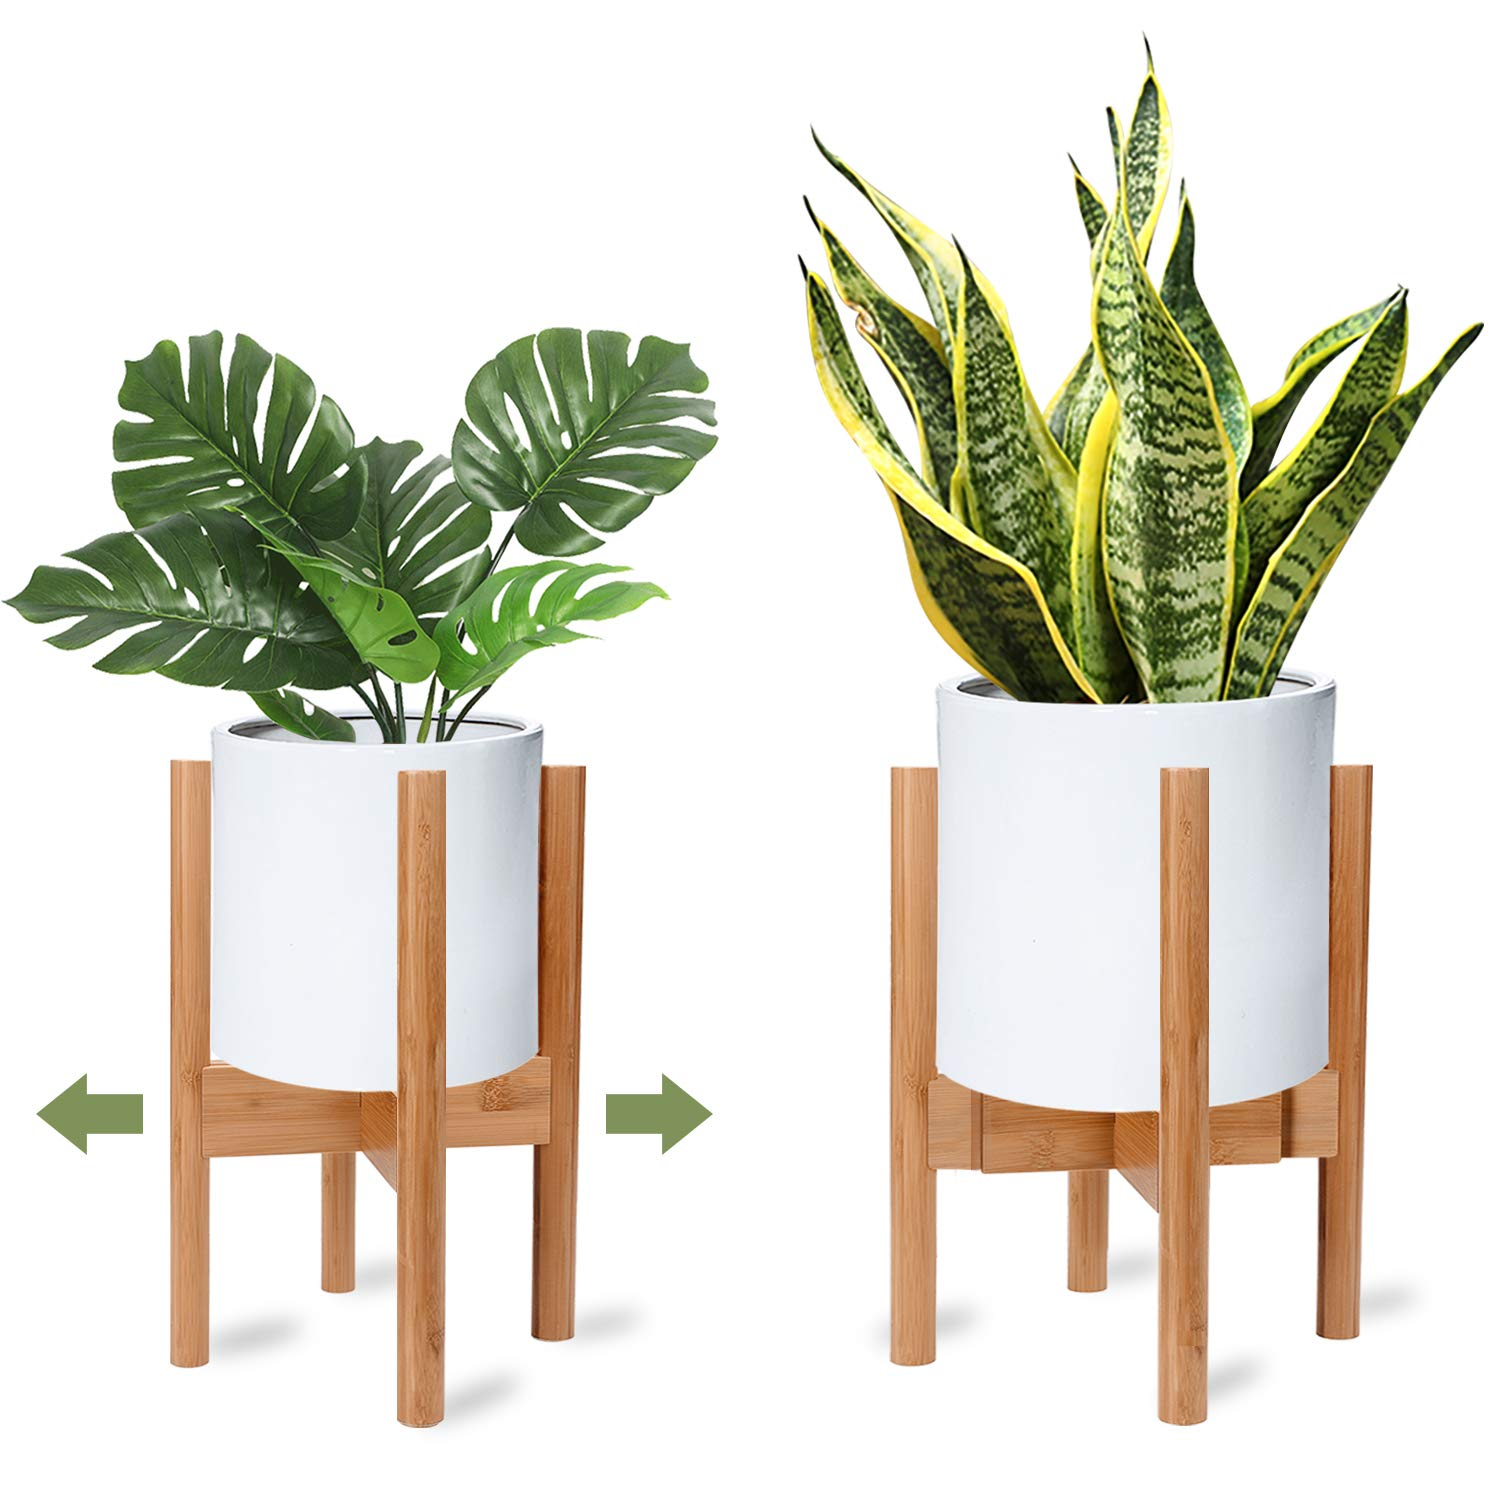 X-cosrack Adjustable Plant Stand Mid Century Wood Modern Flower Potted Holder Rack for Indoor Outdoor, Fit 8'' to 12'' Planter(Plant and Pot Not Included) by X-cosrack